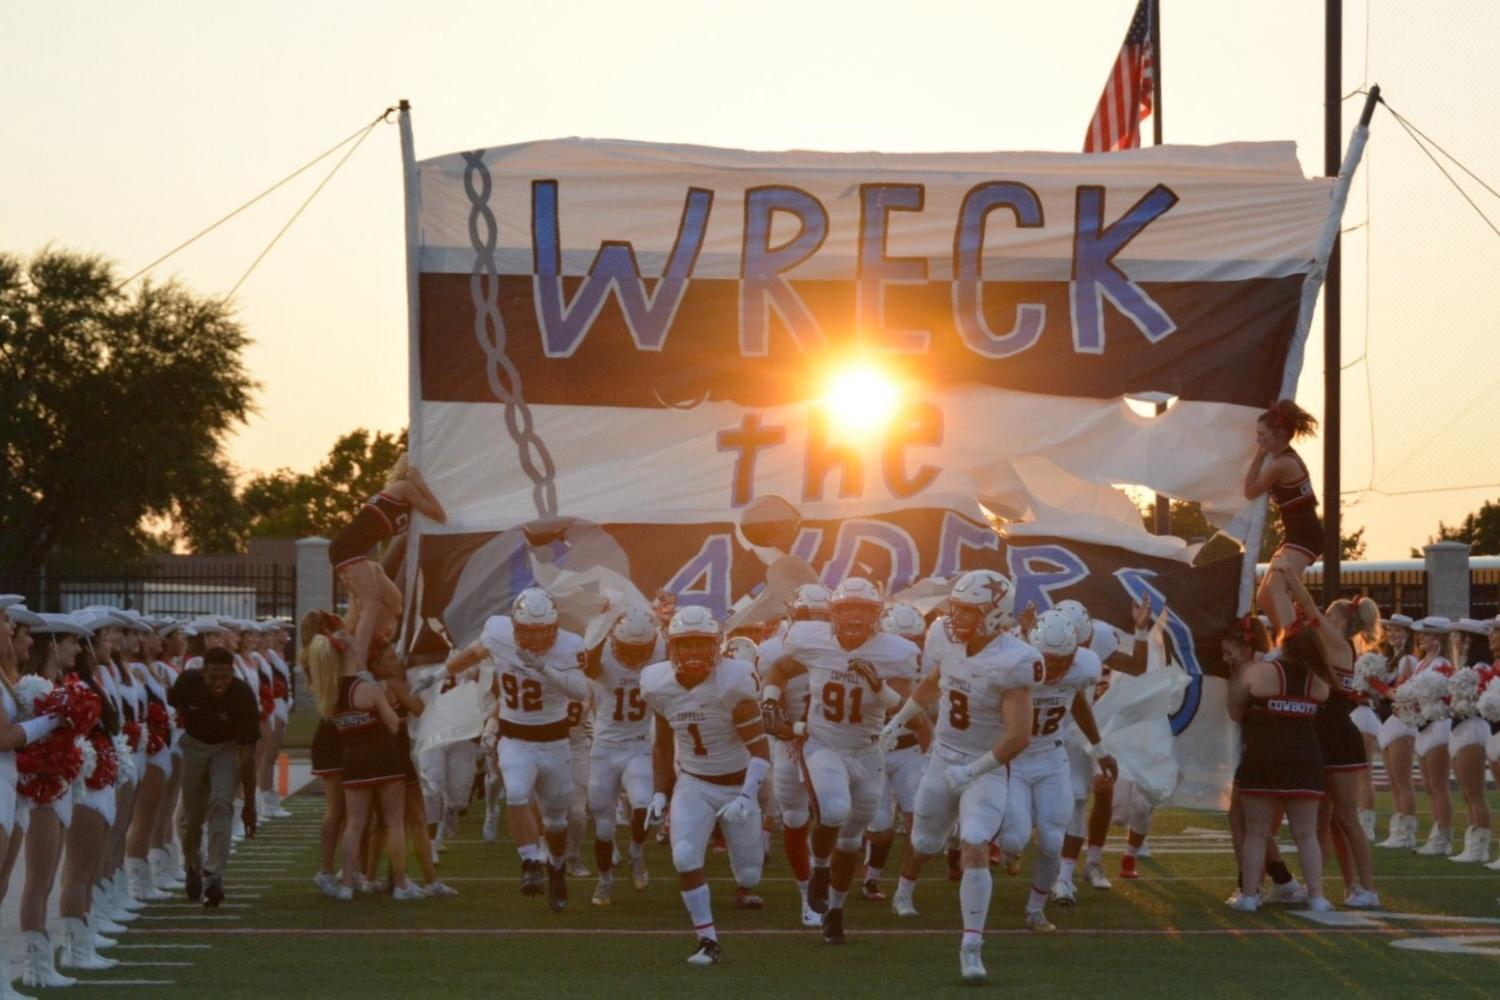 The+Coppell+Cowboys+football+team+takes+the+field+before+its+game+against+the+L.D.+Bell+Blue++Raiders+on+Sept.+1+at+HEB+Pennington+Field.+The+Cowboys+defeated+the+Blue+Raiders%2C+58-23.